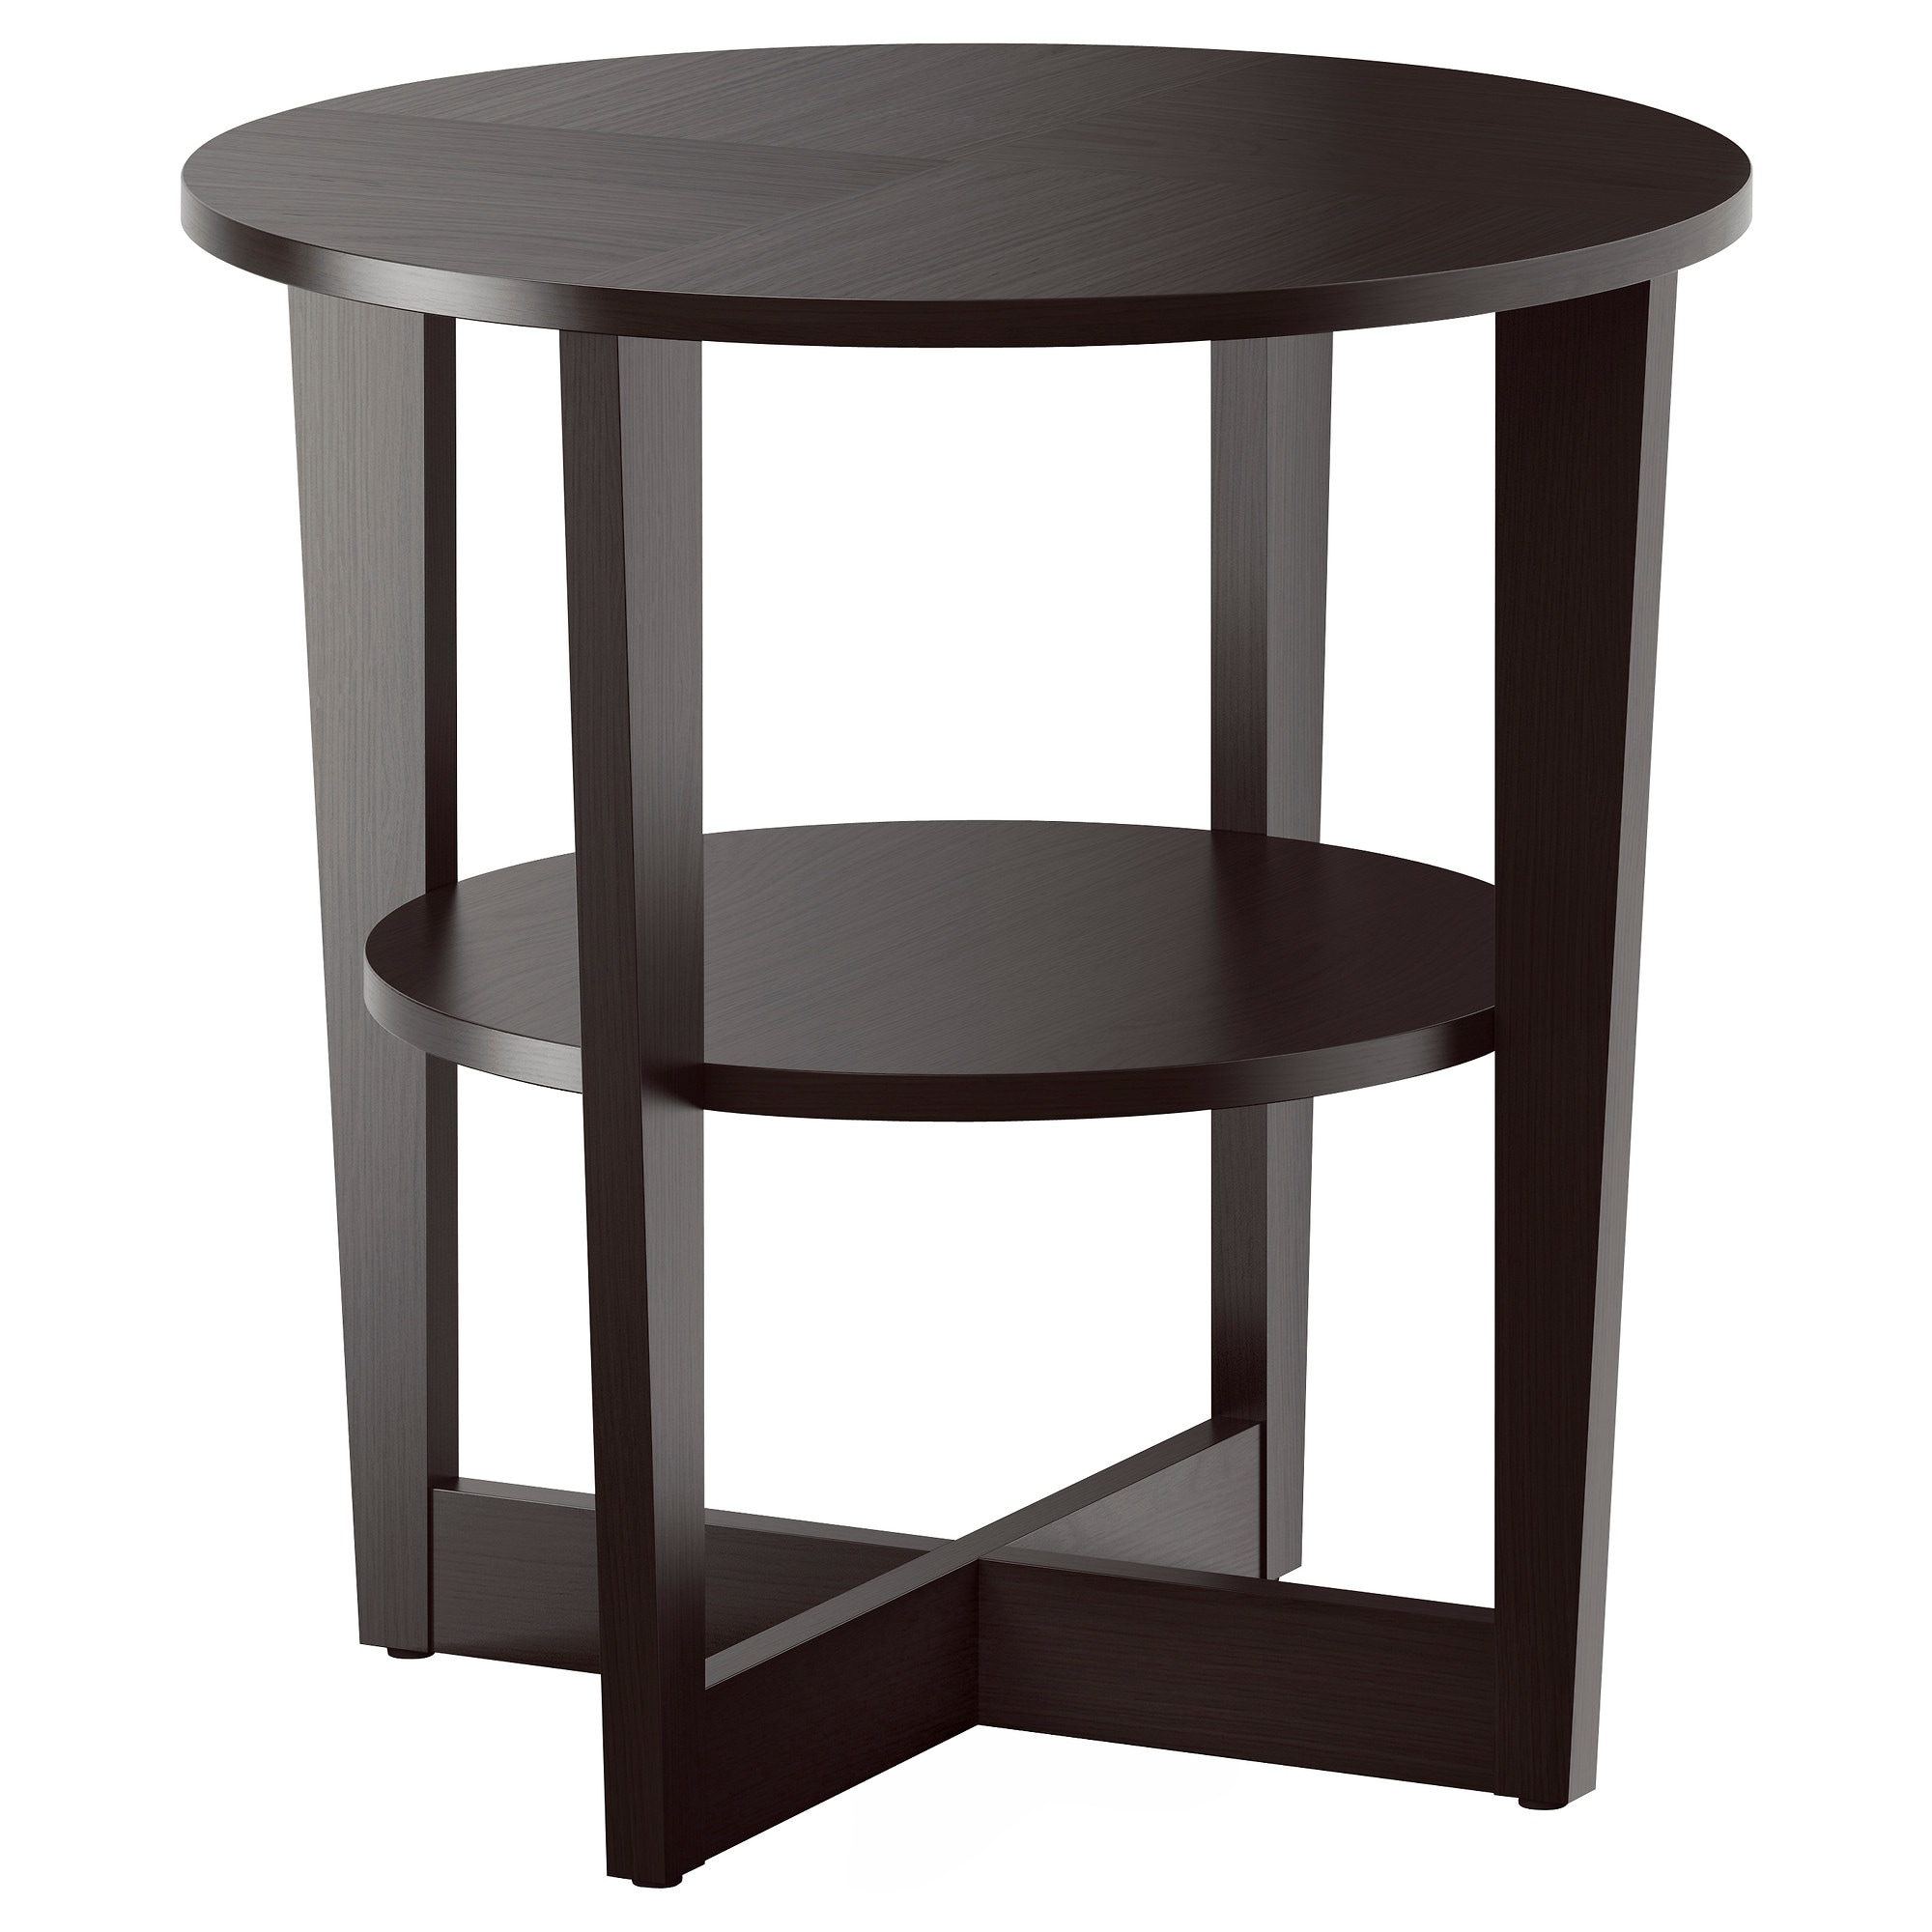 Ikea leksvik coffee table - Vejmon Side Table Black Brown Height 23 5 8 Diameter